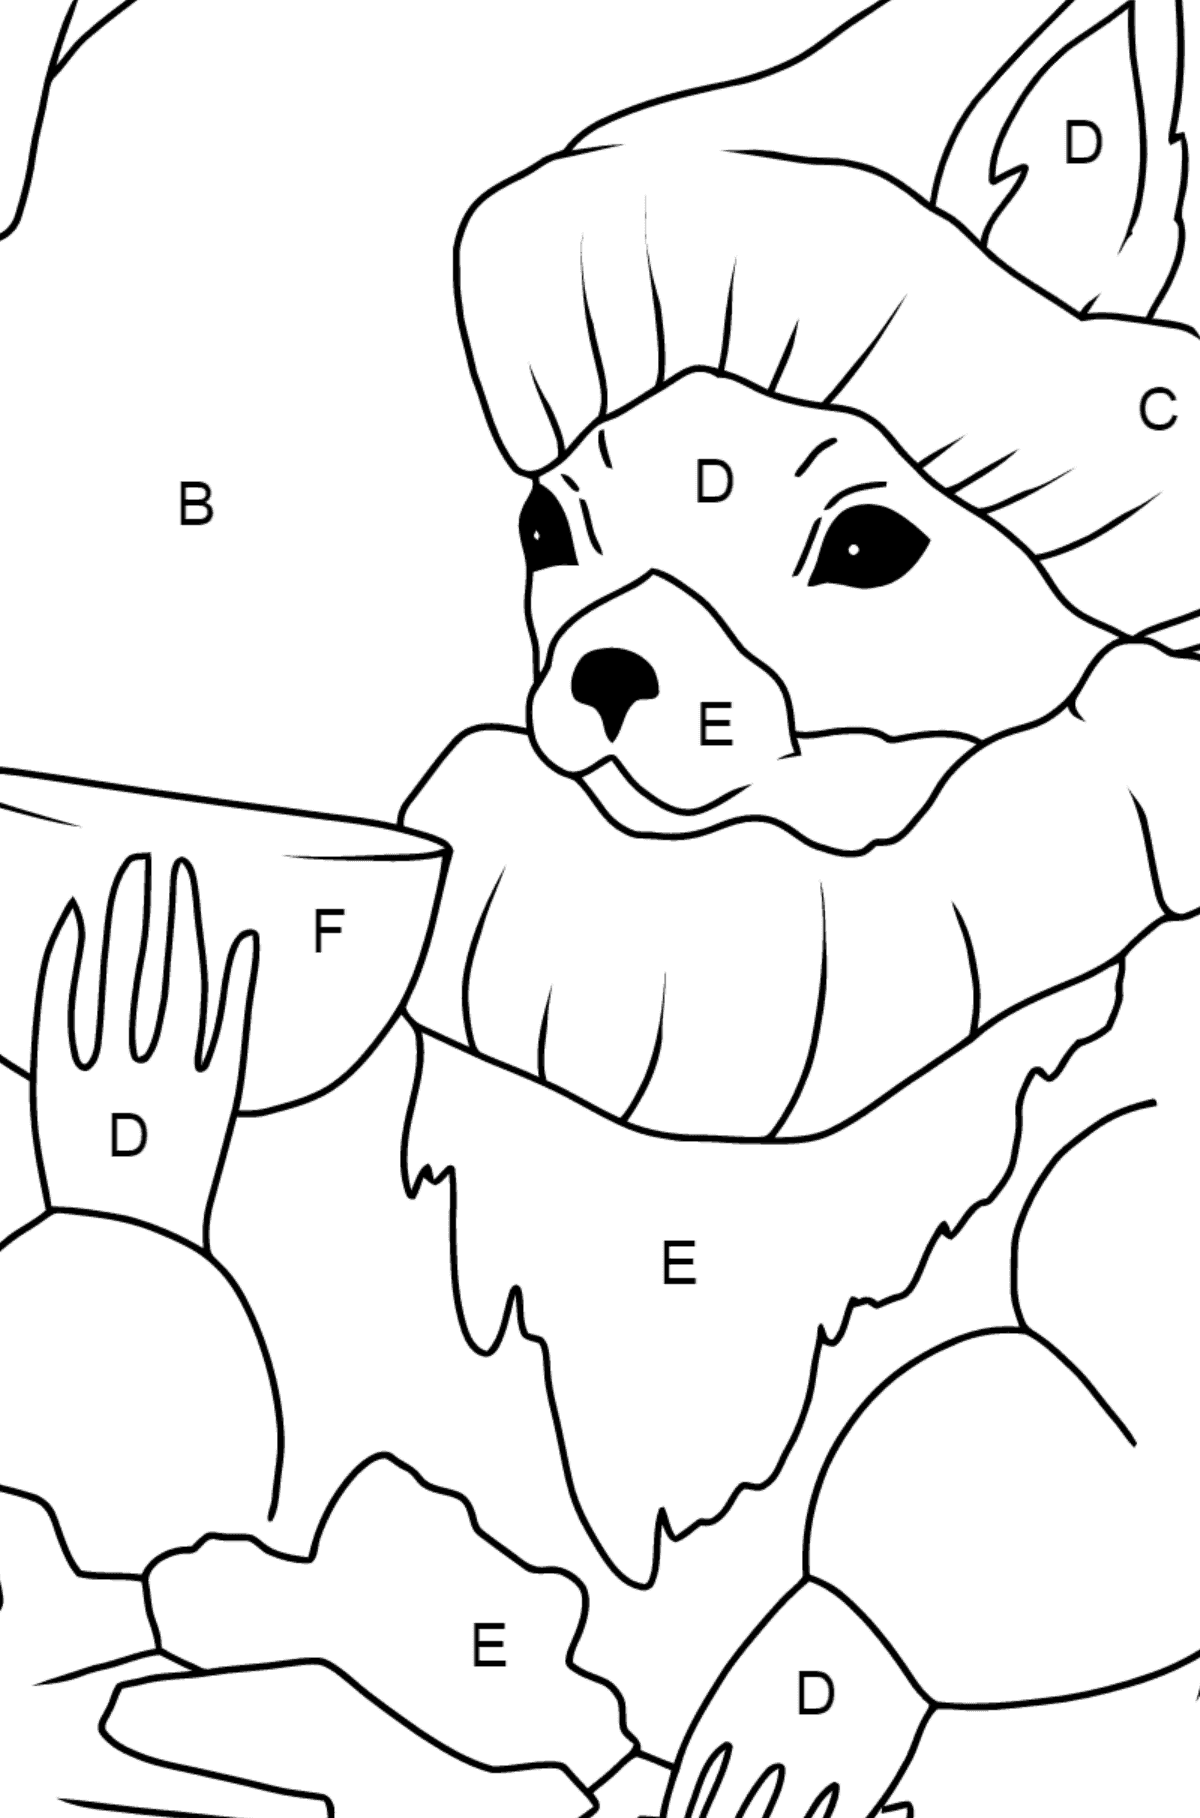 Winter Coloring Page - A Squirrel in a Cozy Burrow is Drinking Tea for Children  - Color by Letters